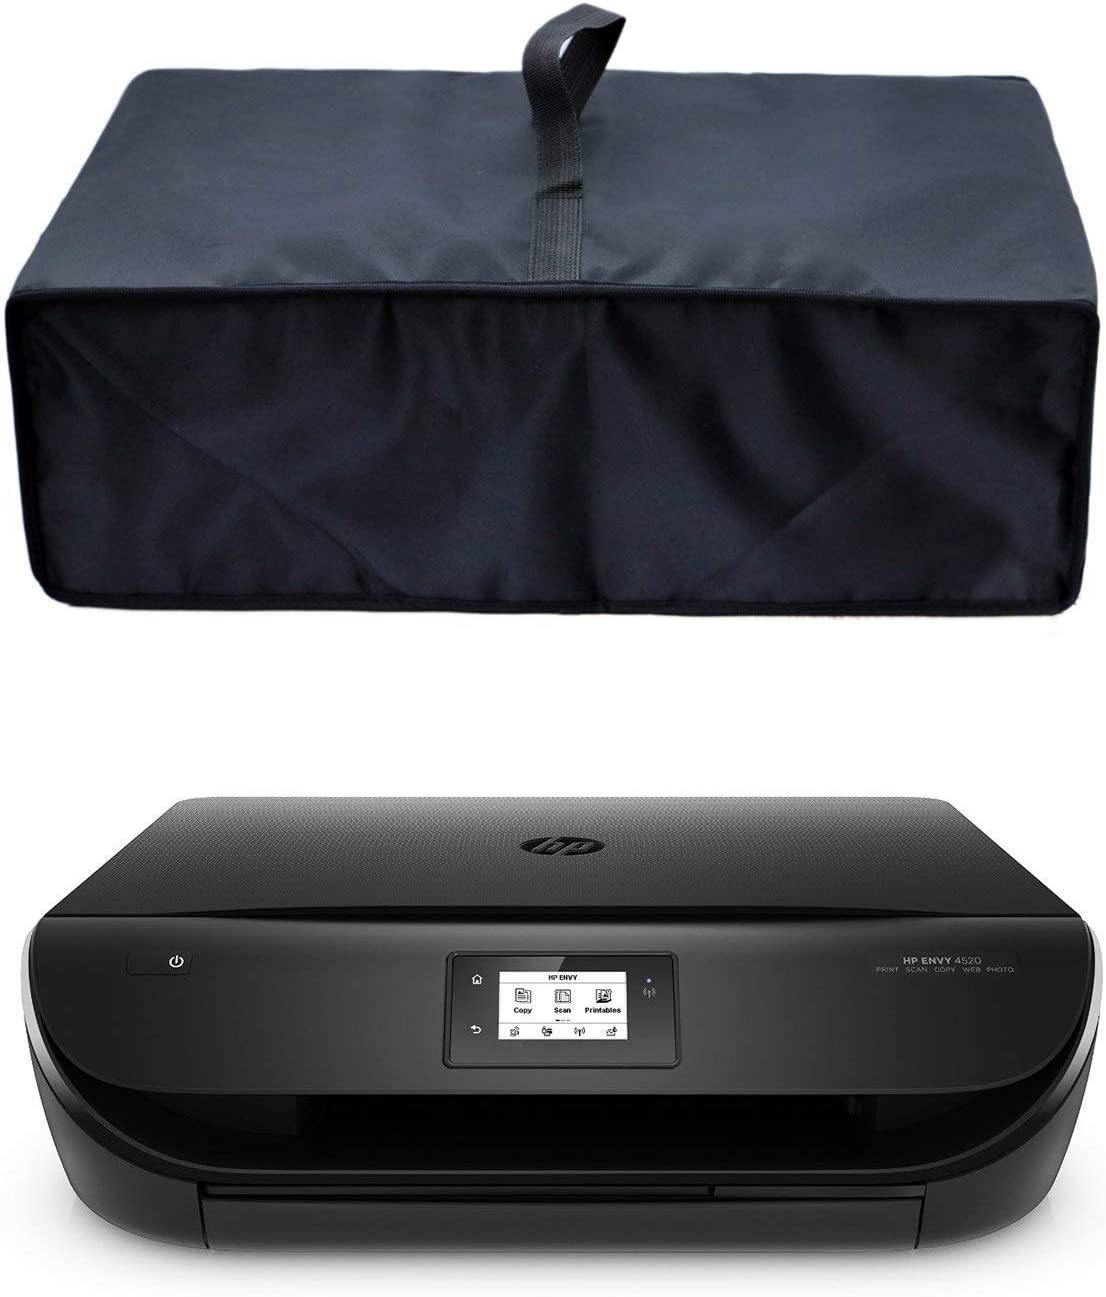 LQSC Nylon Fabric Printer Dust Cover Case Protector for HP Envy 5055/ HP Envy Pro 6455 Wireless All-in-One Photo Printer